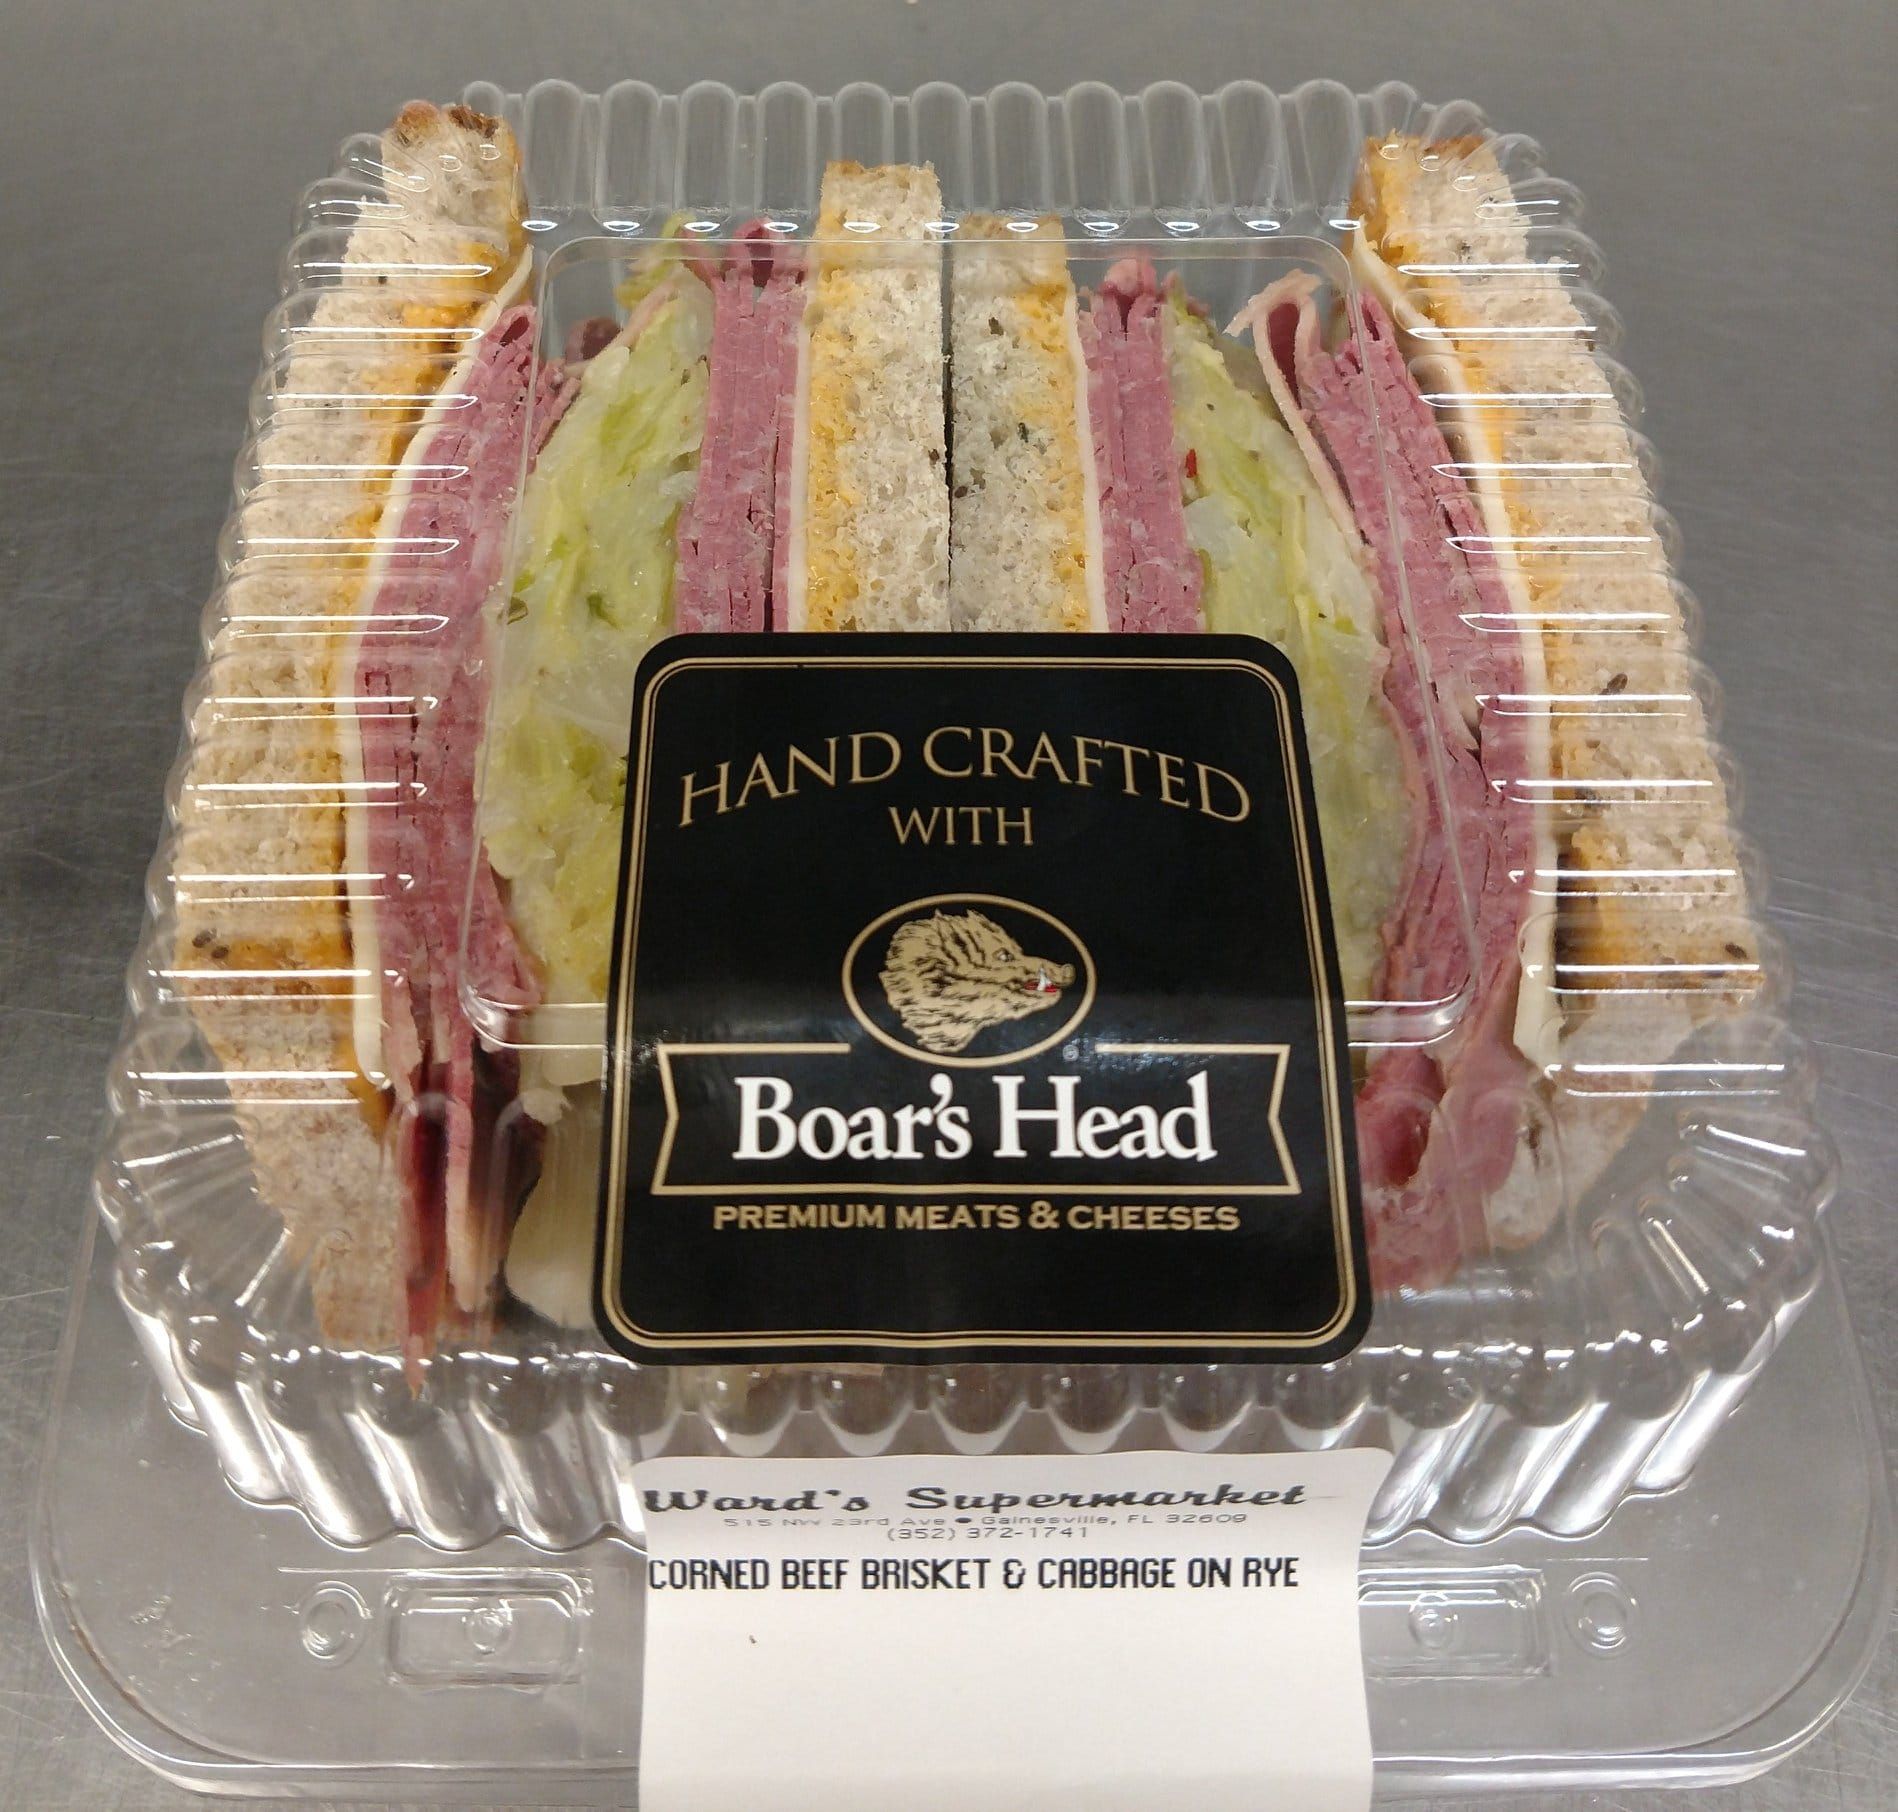 Boar's Head Deli Ward's Supermarket Gainesville, FL